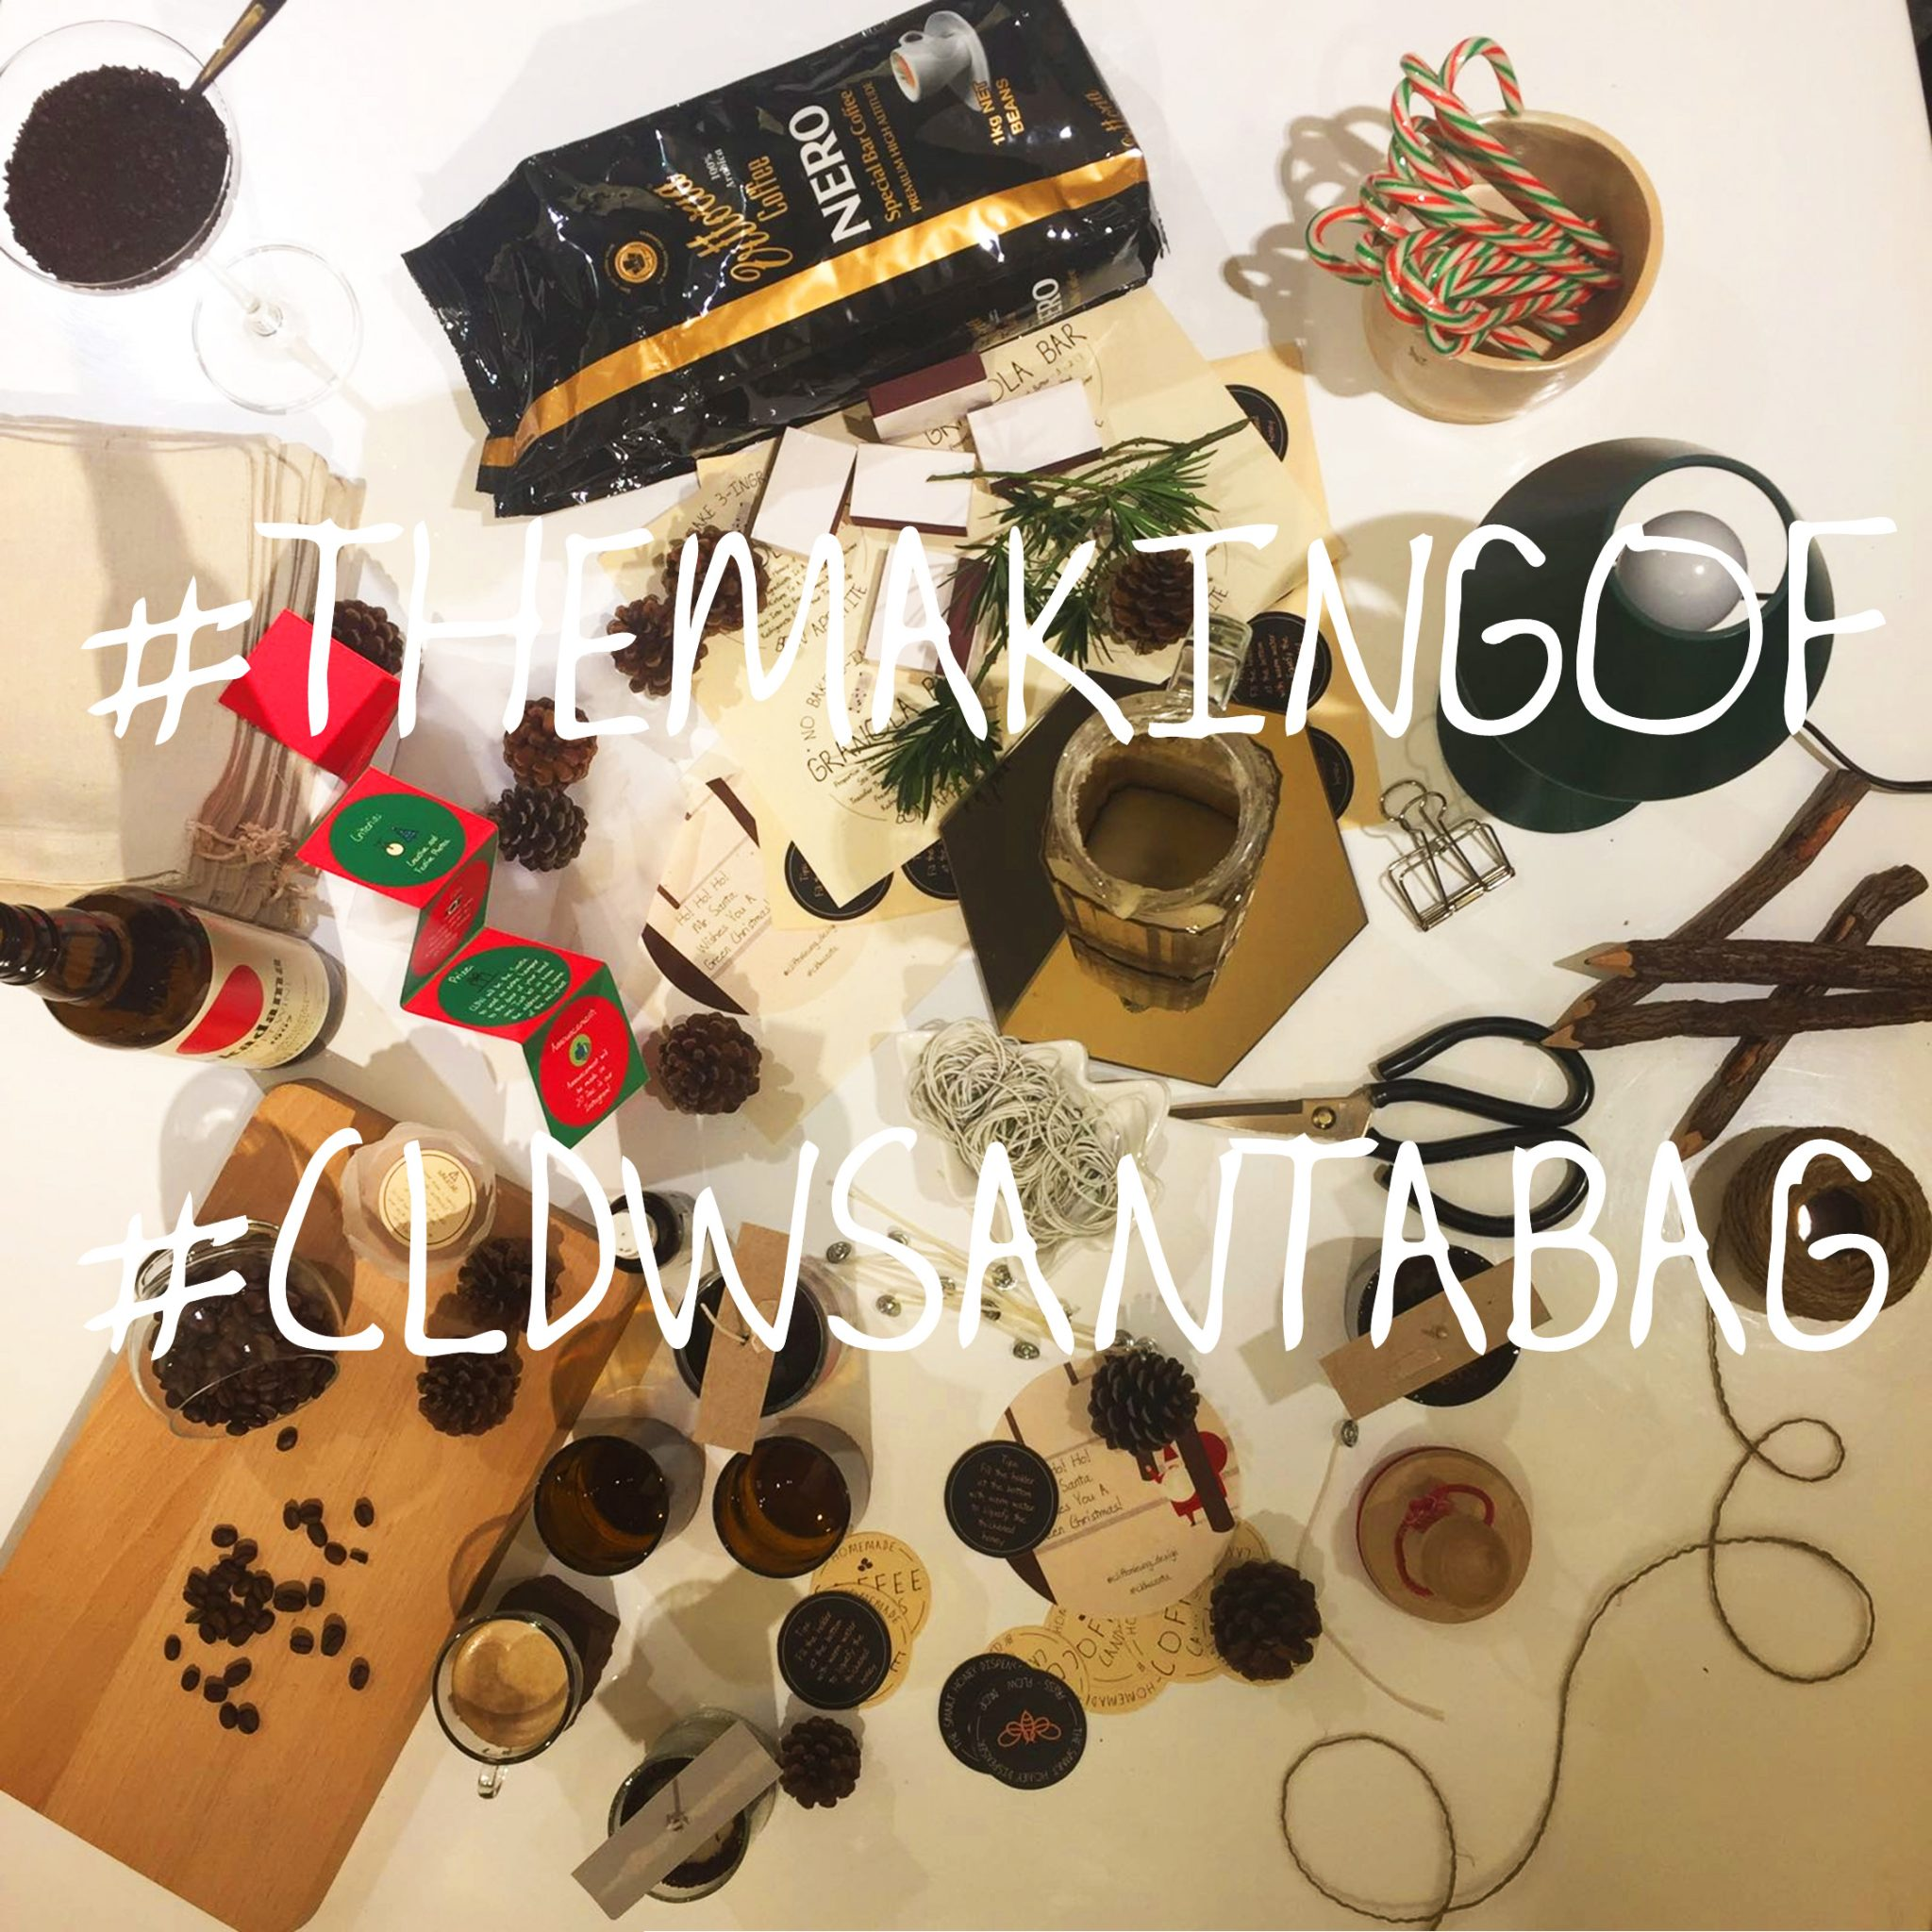 What's in the #CLDWSantaBag ?